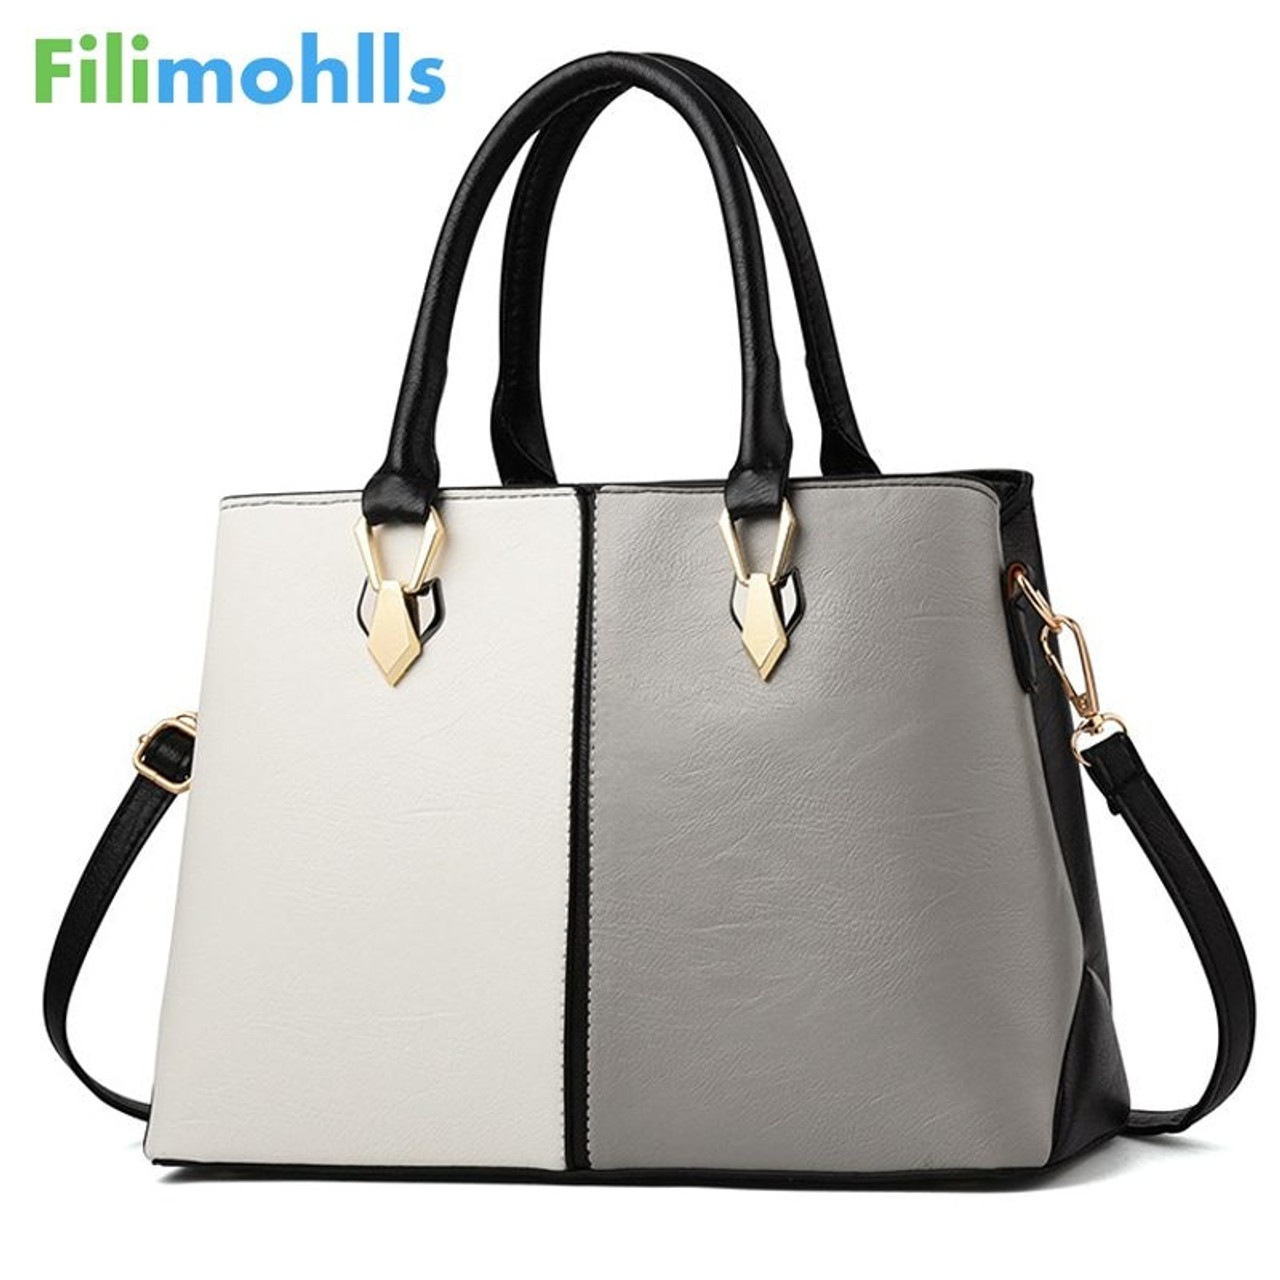 fc7fea1806 Luxury Handbags Women Bags Designer Leather Bags For Women 2018 Fashion  Ladies Handbag New Arrivals Shoulder ...